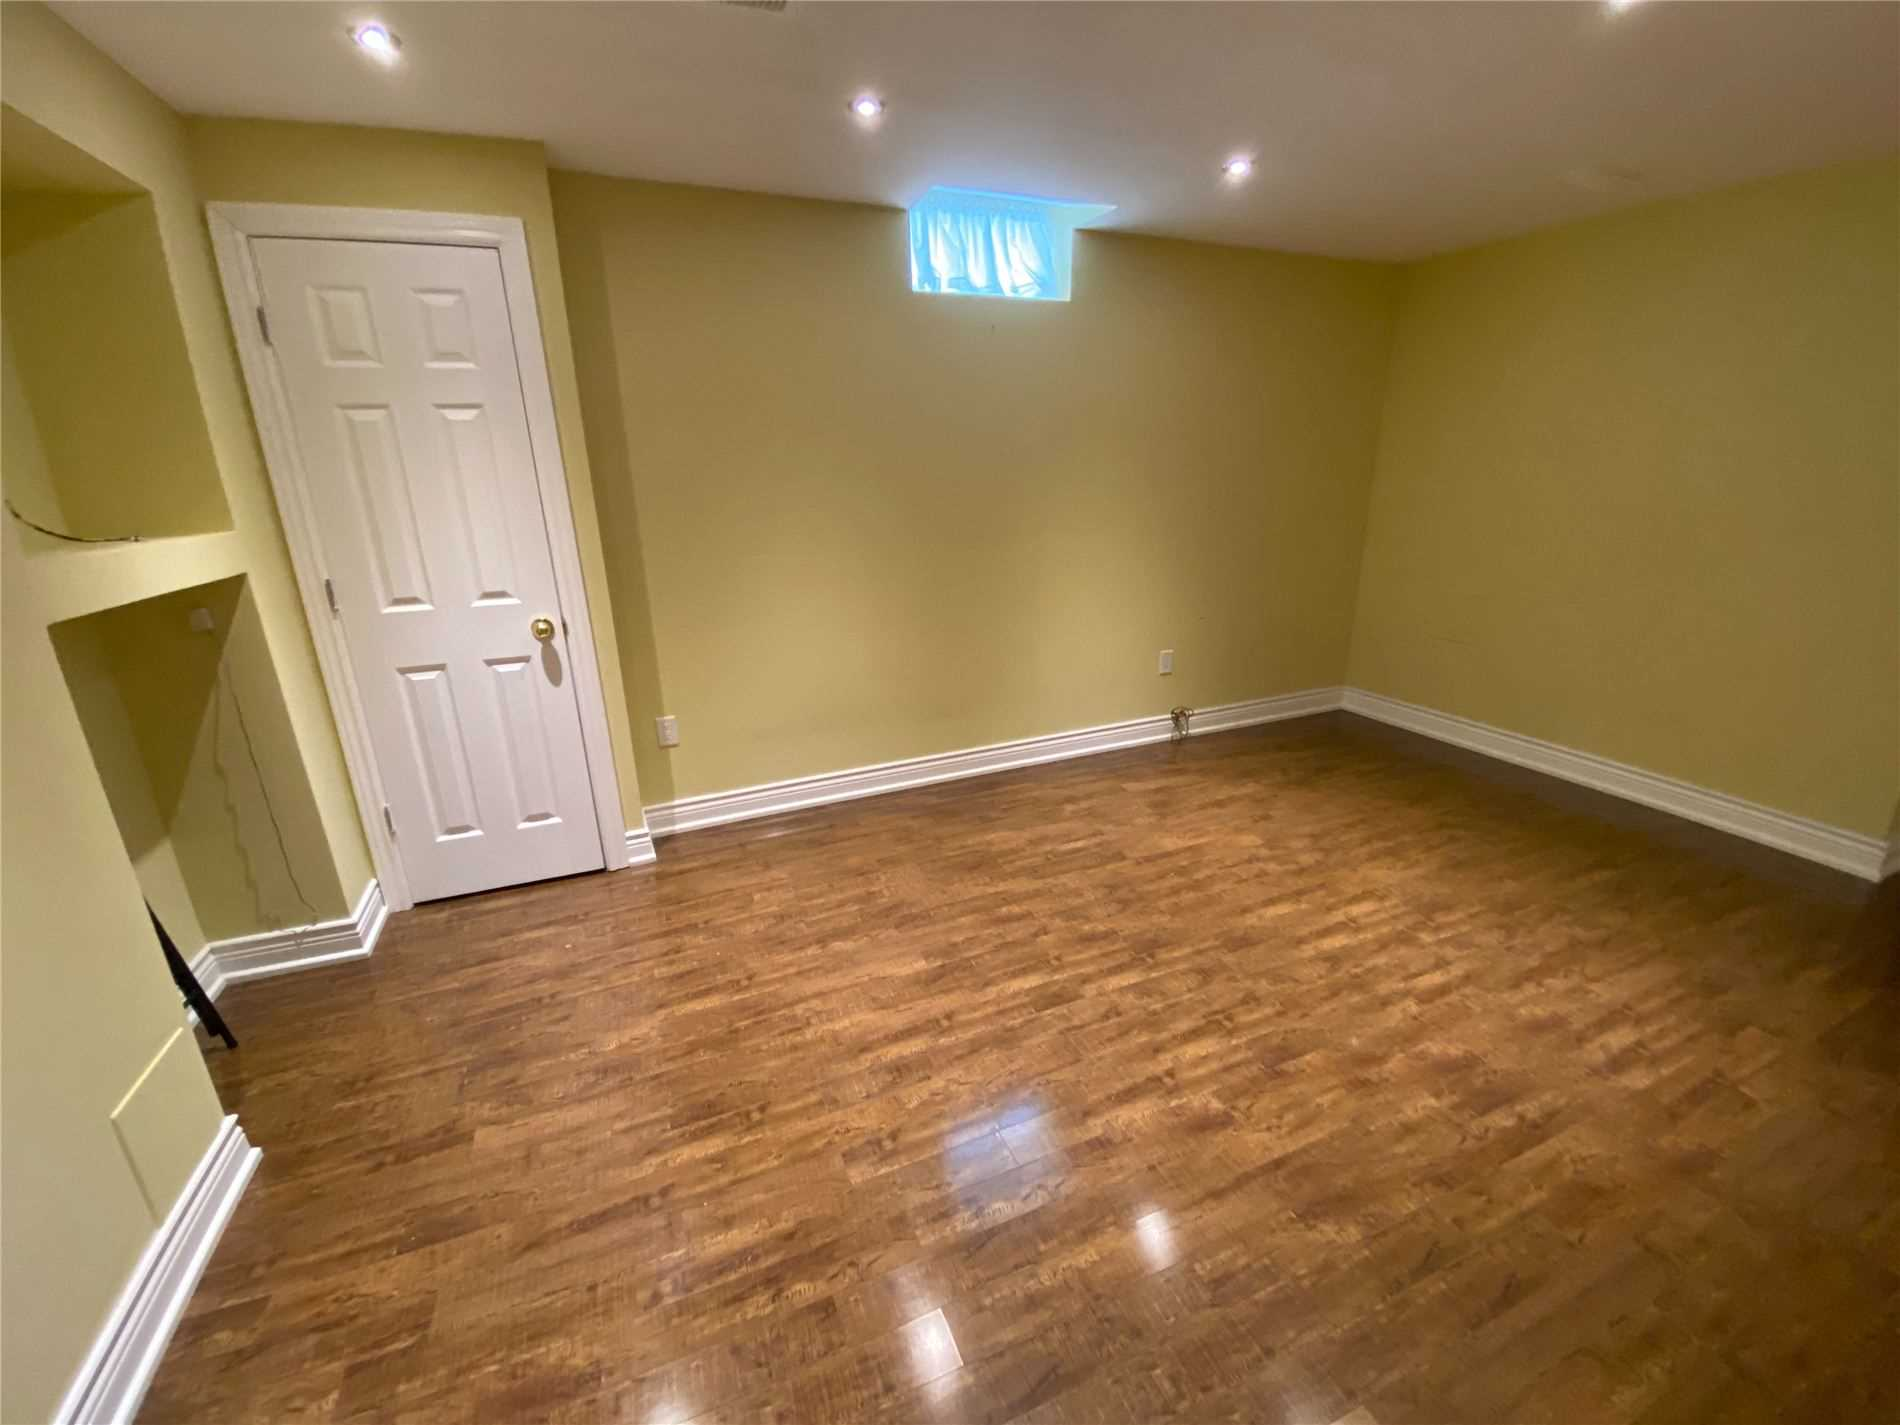 Image 7 of 8 showing inside of 0 Bedroom Semi-Detached Apartment for Lease at 2 Maroon Dr, Richmond Hill L4E5B4